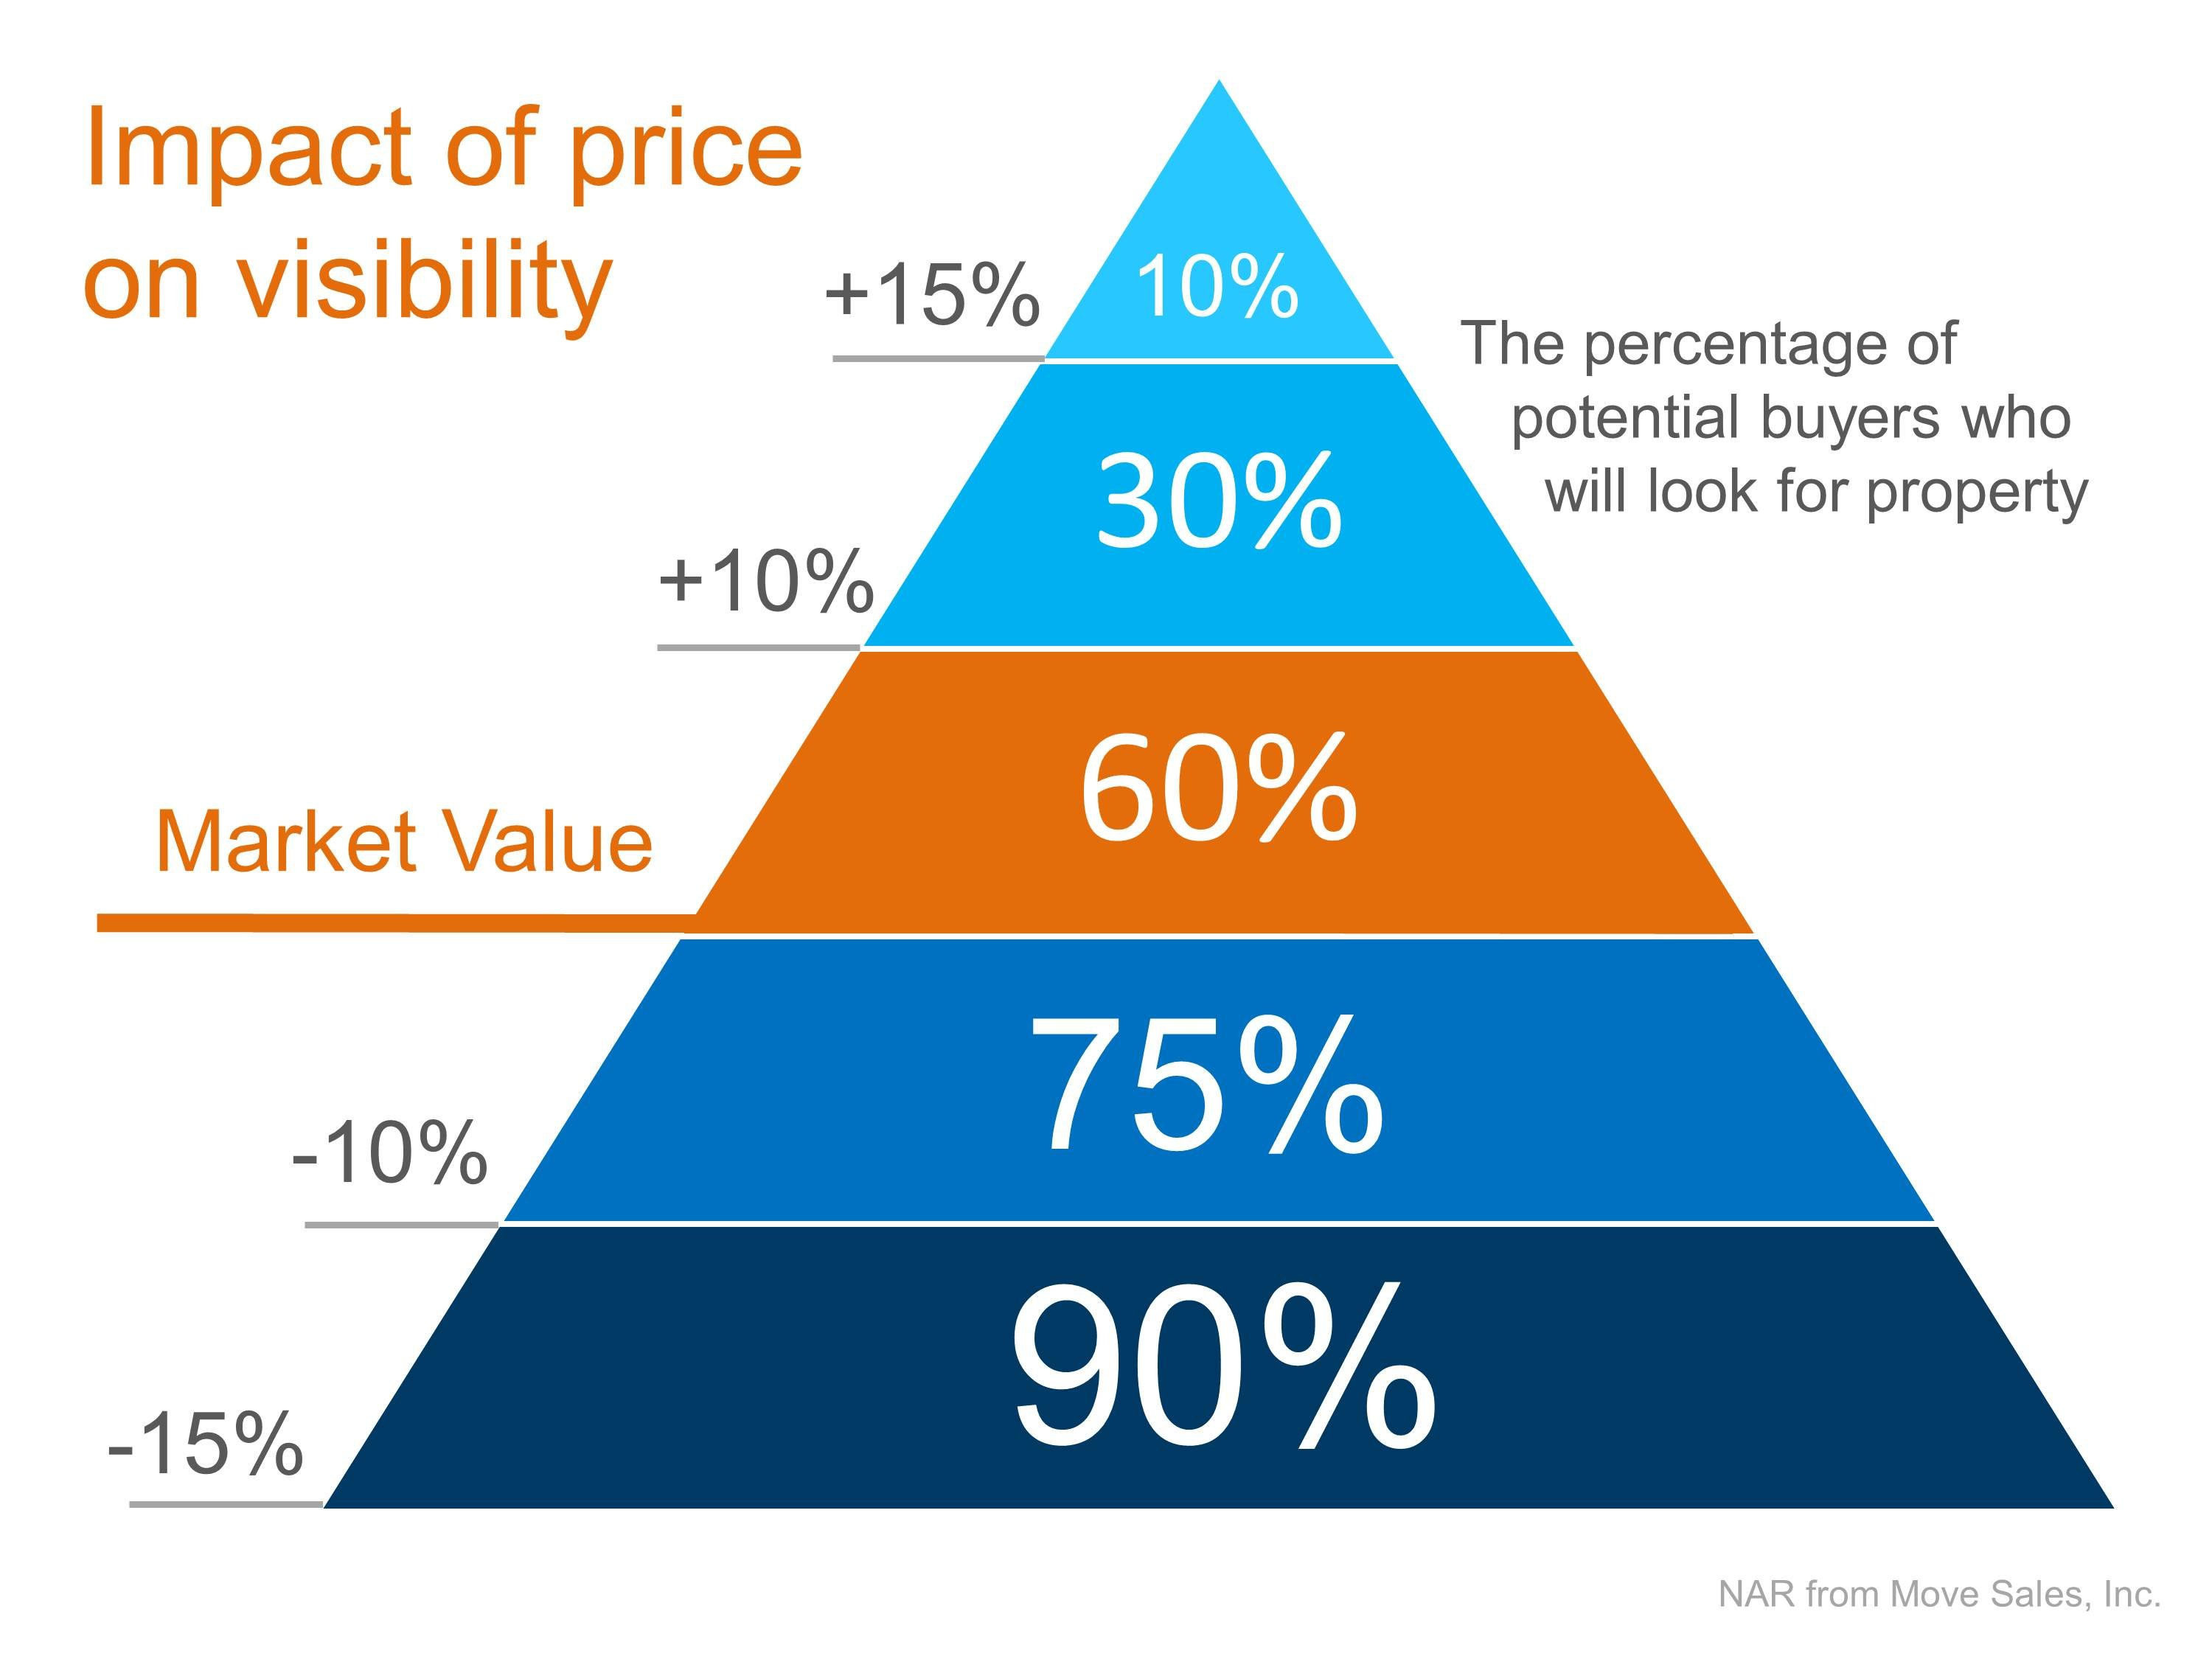 Impact of Price on Visibility | Keeping Current Matters